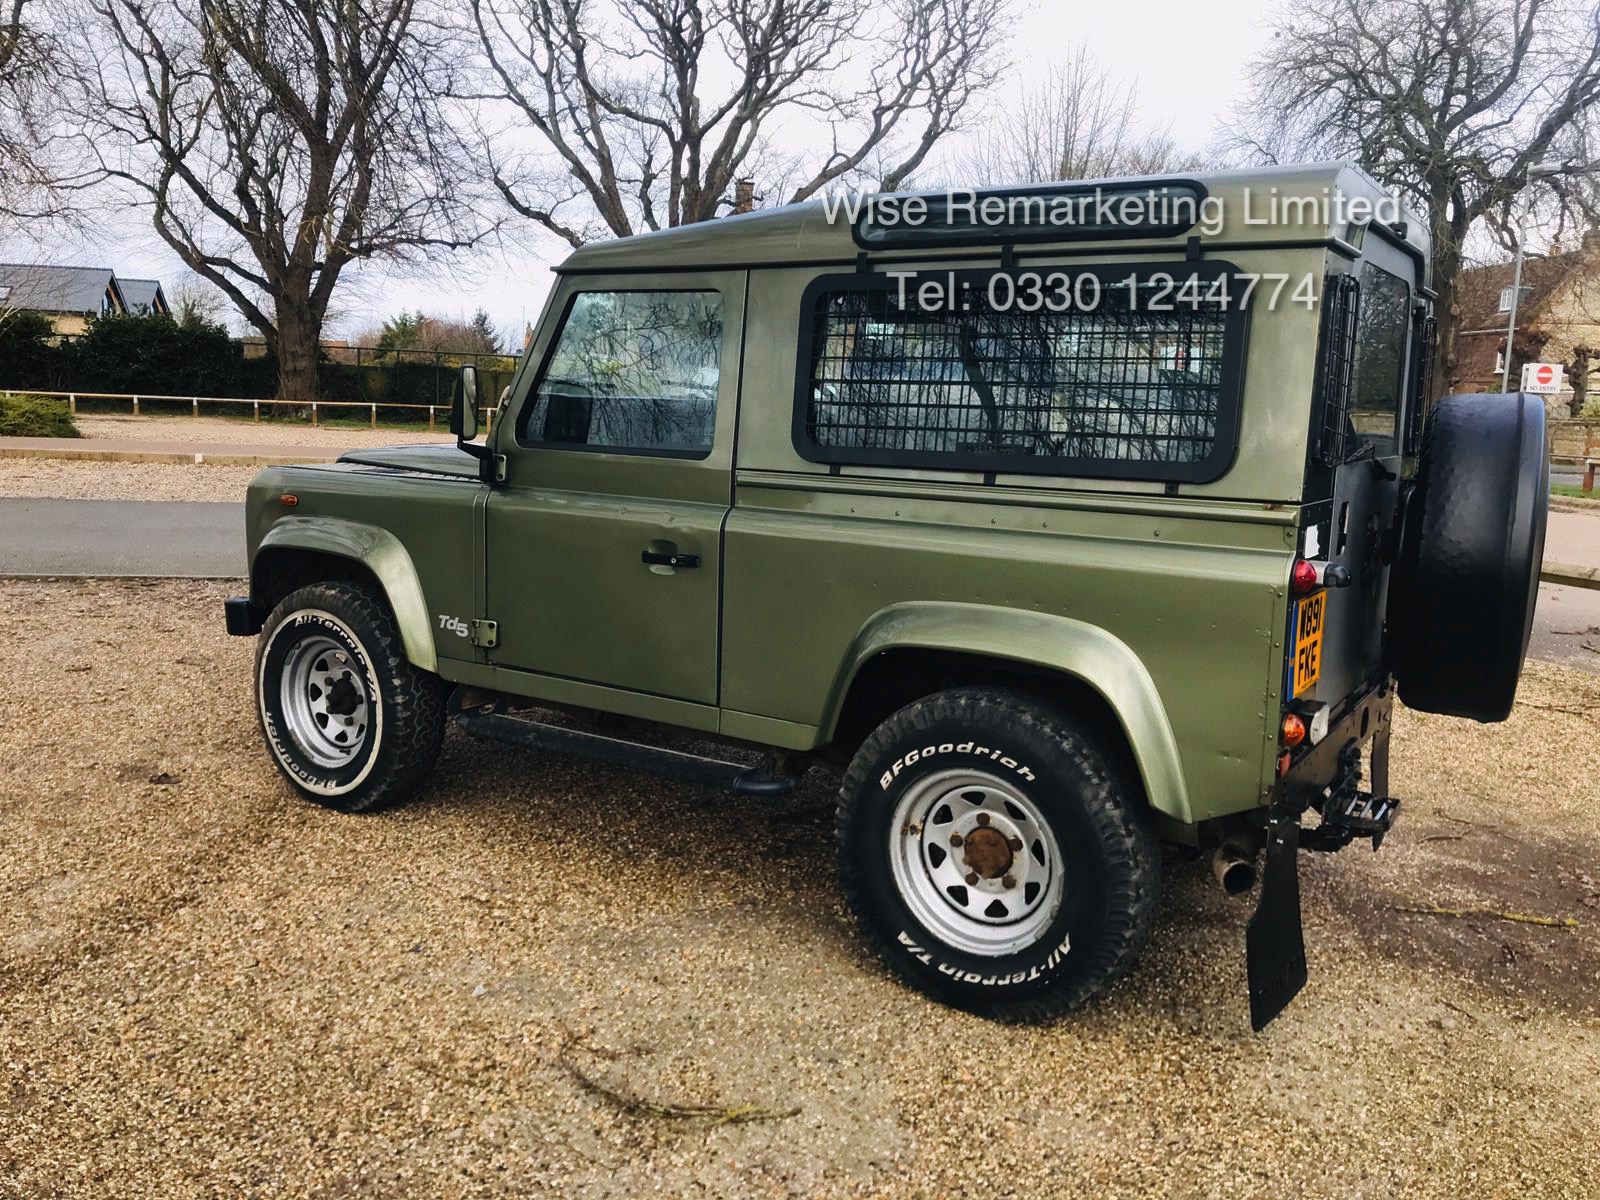 (RESERVE MET) Land Rover Defender 90 County 2.5 TD5 - 2000 Year W Reg - 7 Seater- SAVE 20% NO VAT - Image 5 of 12